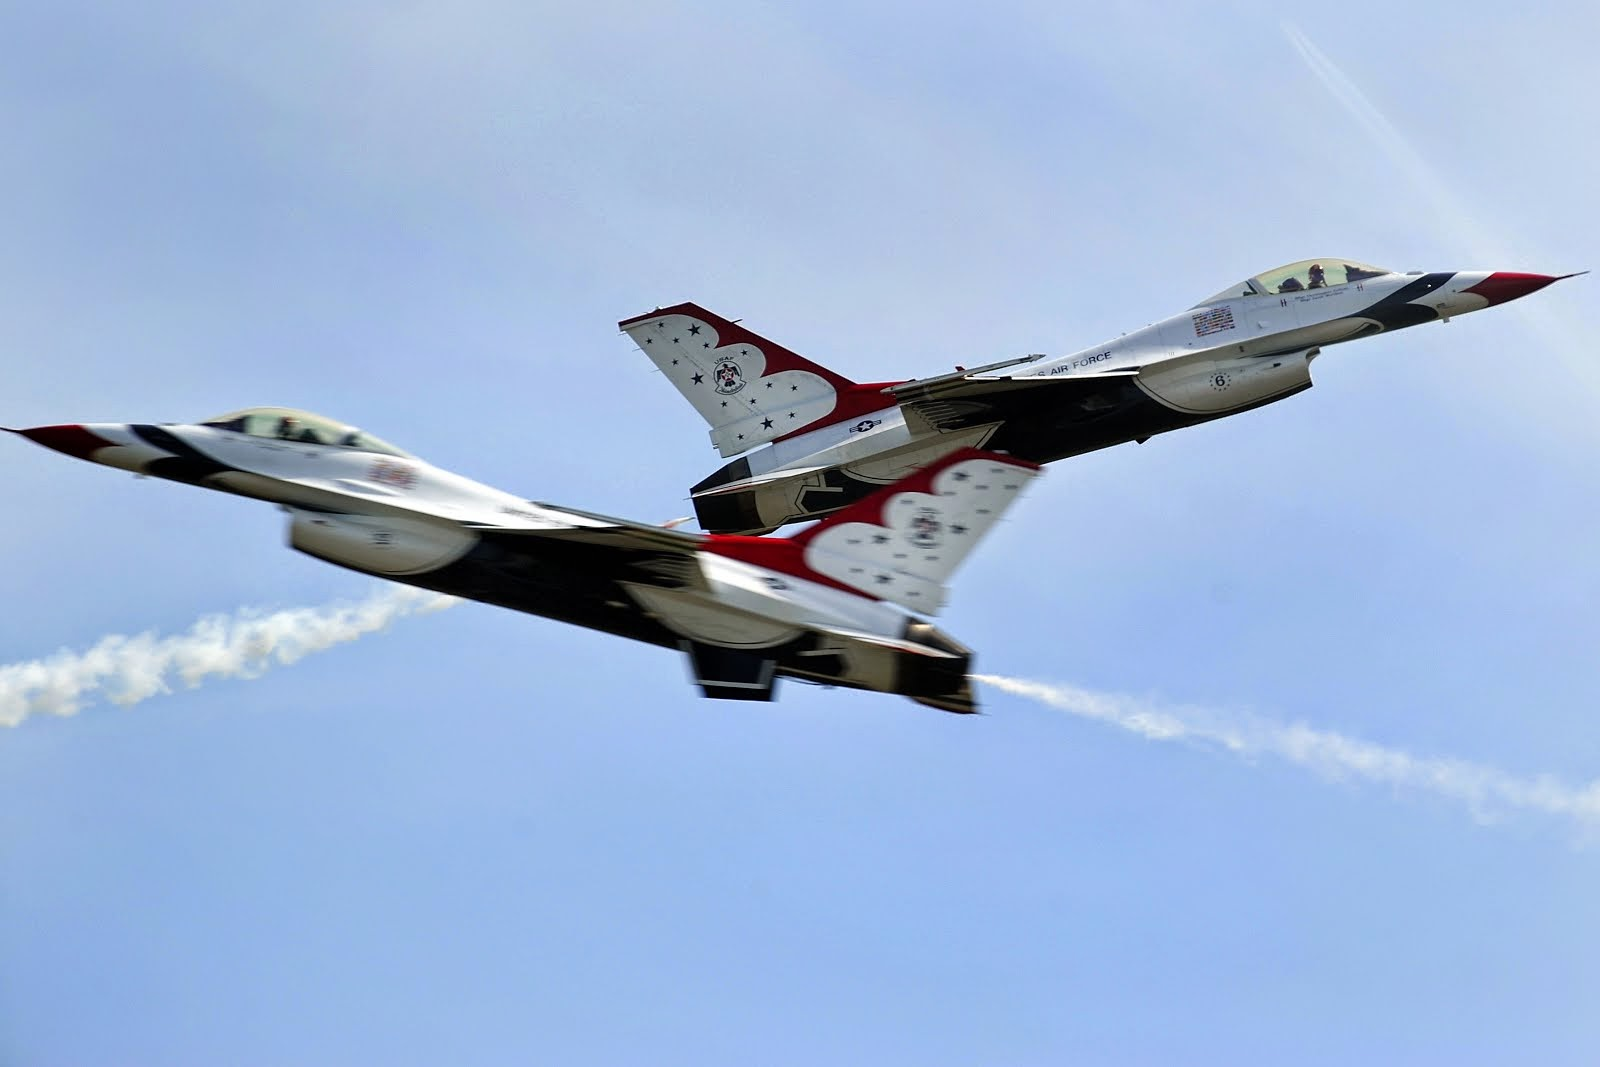 AIR FORCE THUNDERBIRDS AT JOINT BASE MCGUIRE-DIX-LAKEHURST